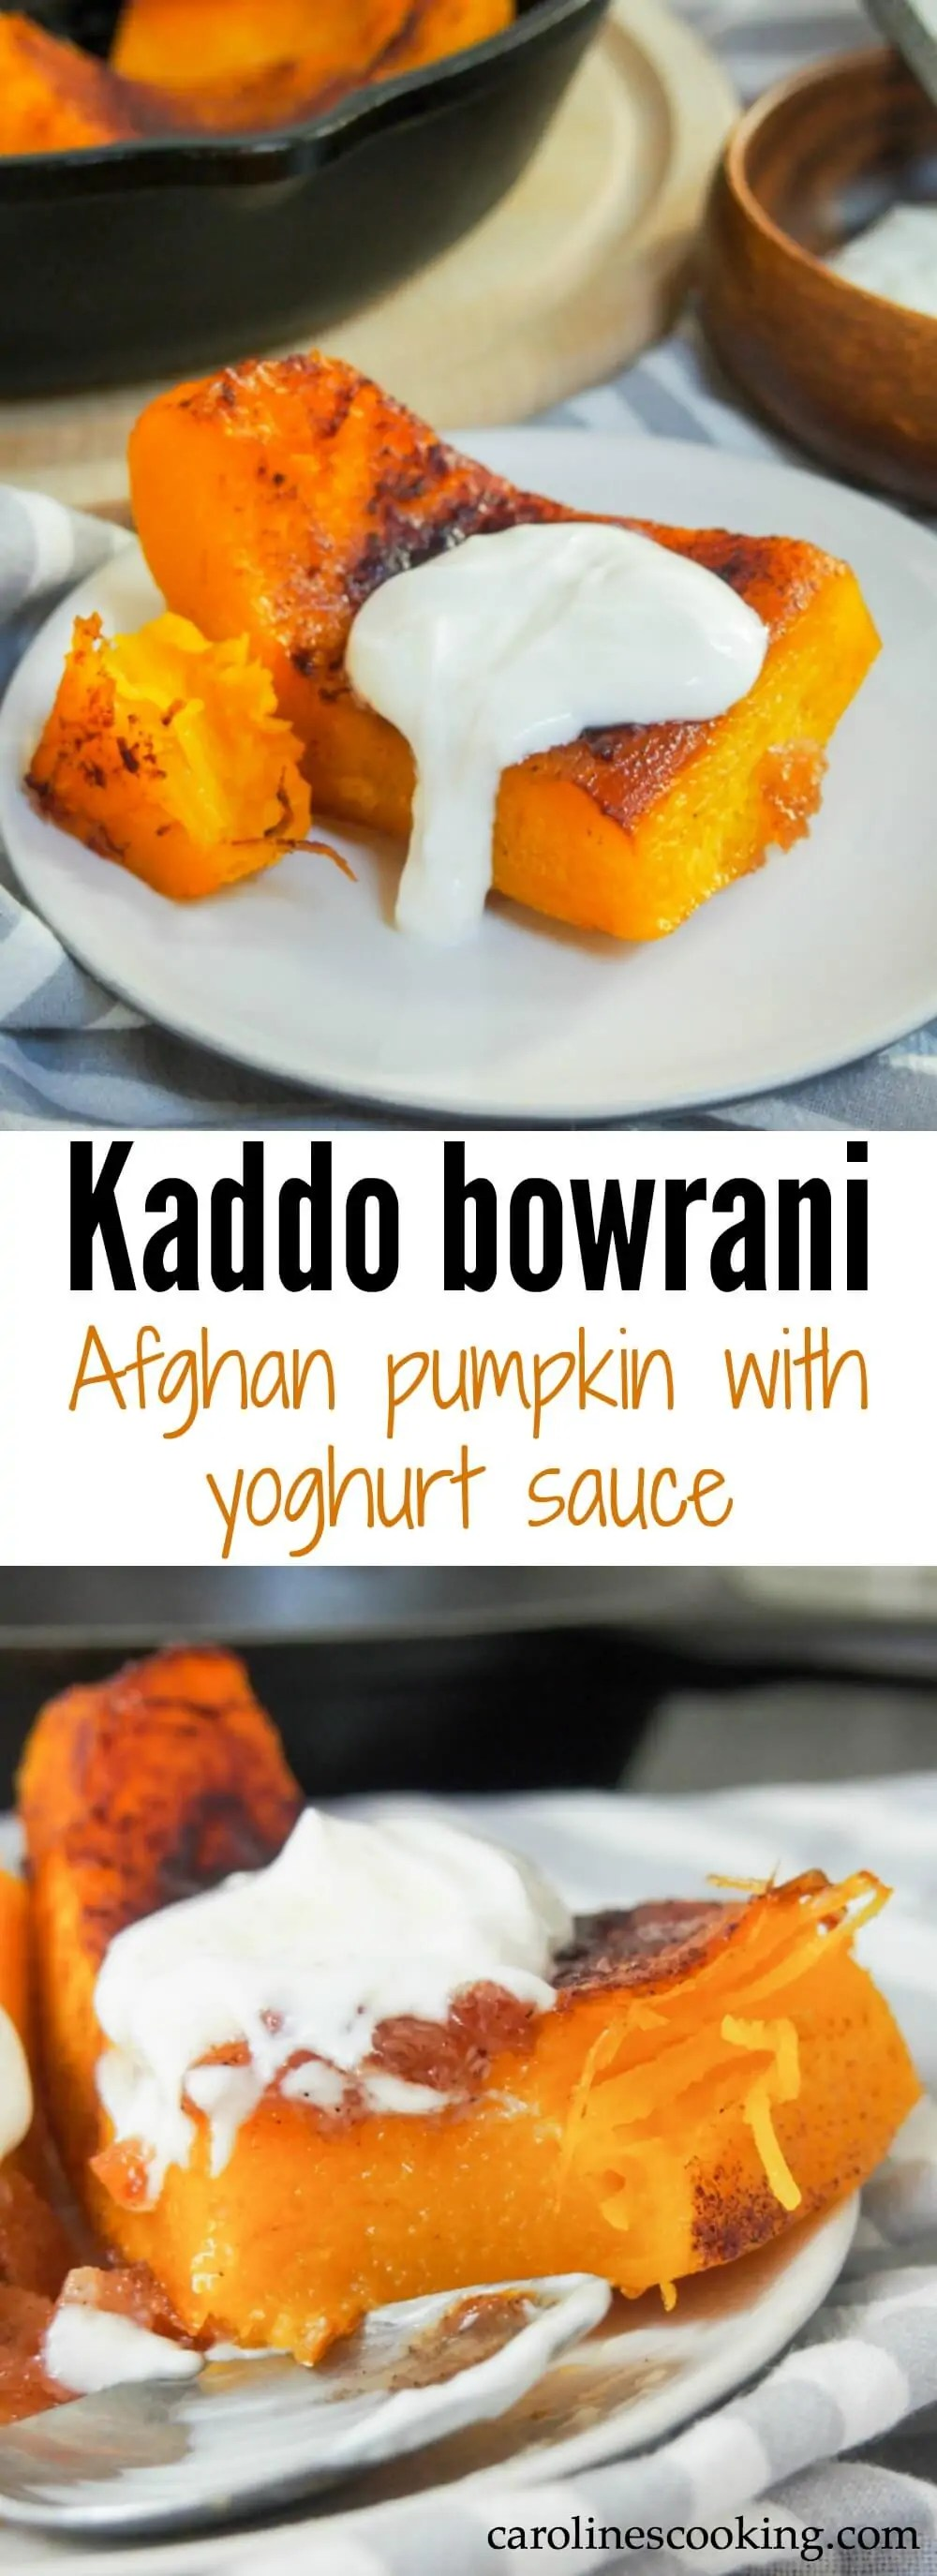 Meltingly sweet and tender pumpkin contrasts with gently savory yoghurt in this Afghan favorite appetizer/side, kaddo bowrani. It's comforting and moreish, and a dish you'll want to find any excuse to have again.